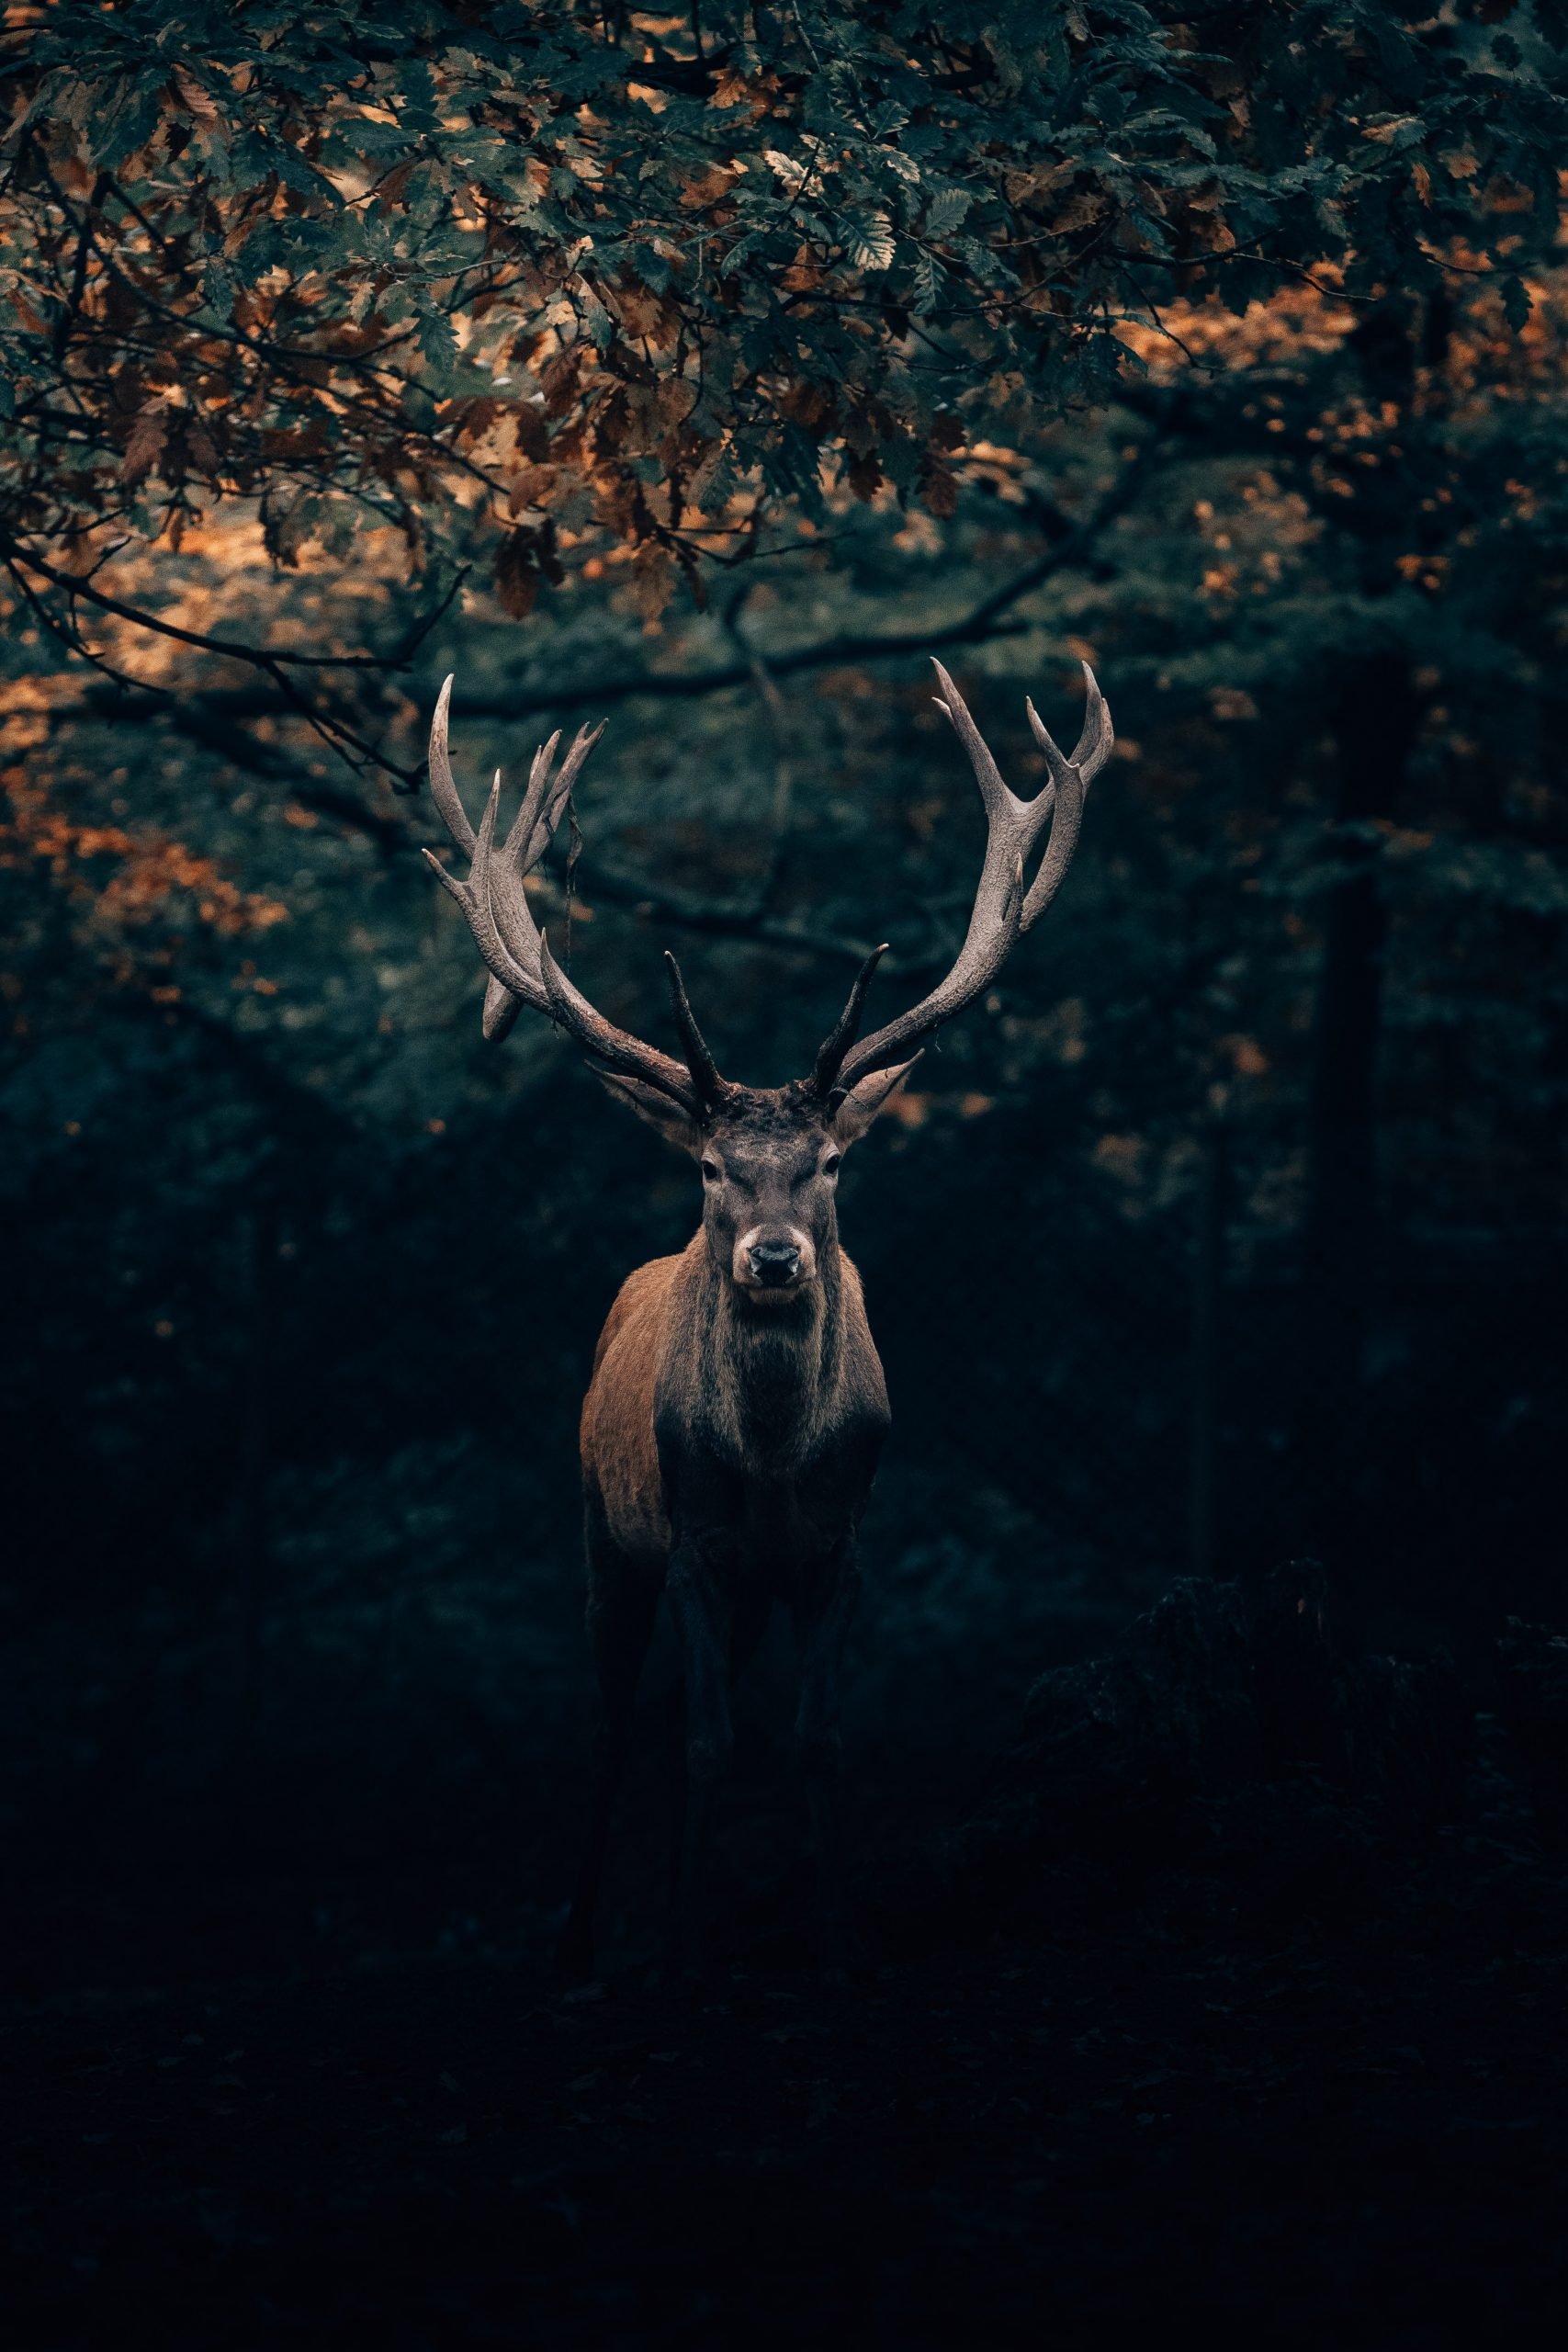 wallpaper Your Majesty, the King of Teutoburg Forest! 🦌